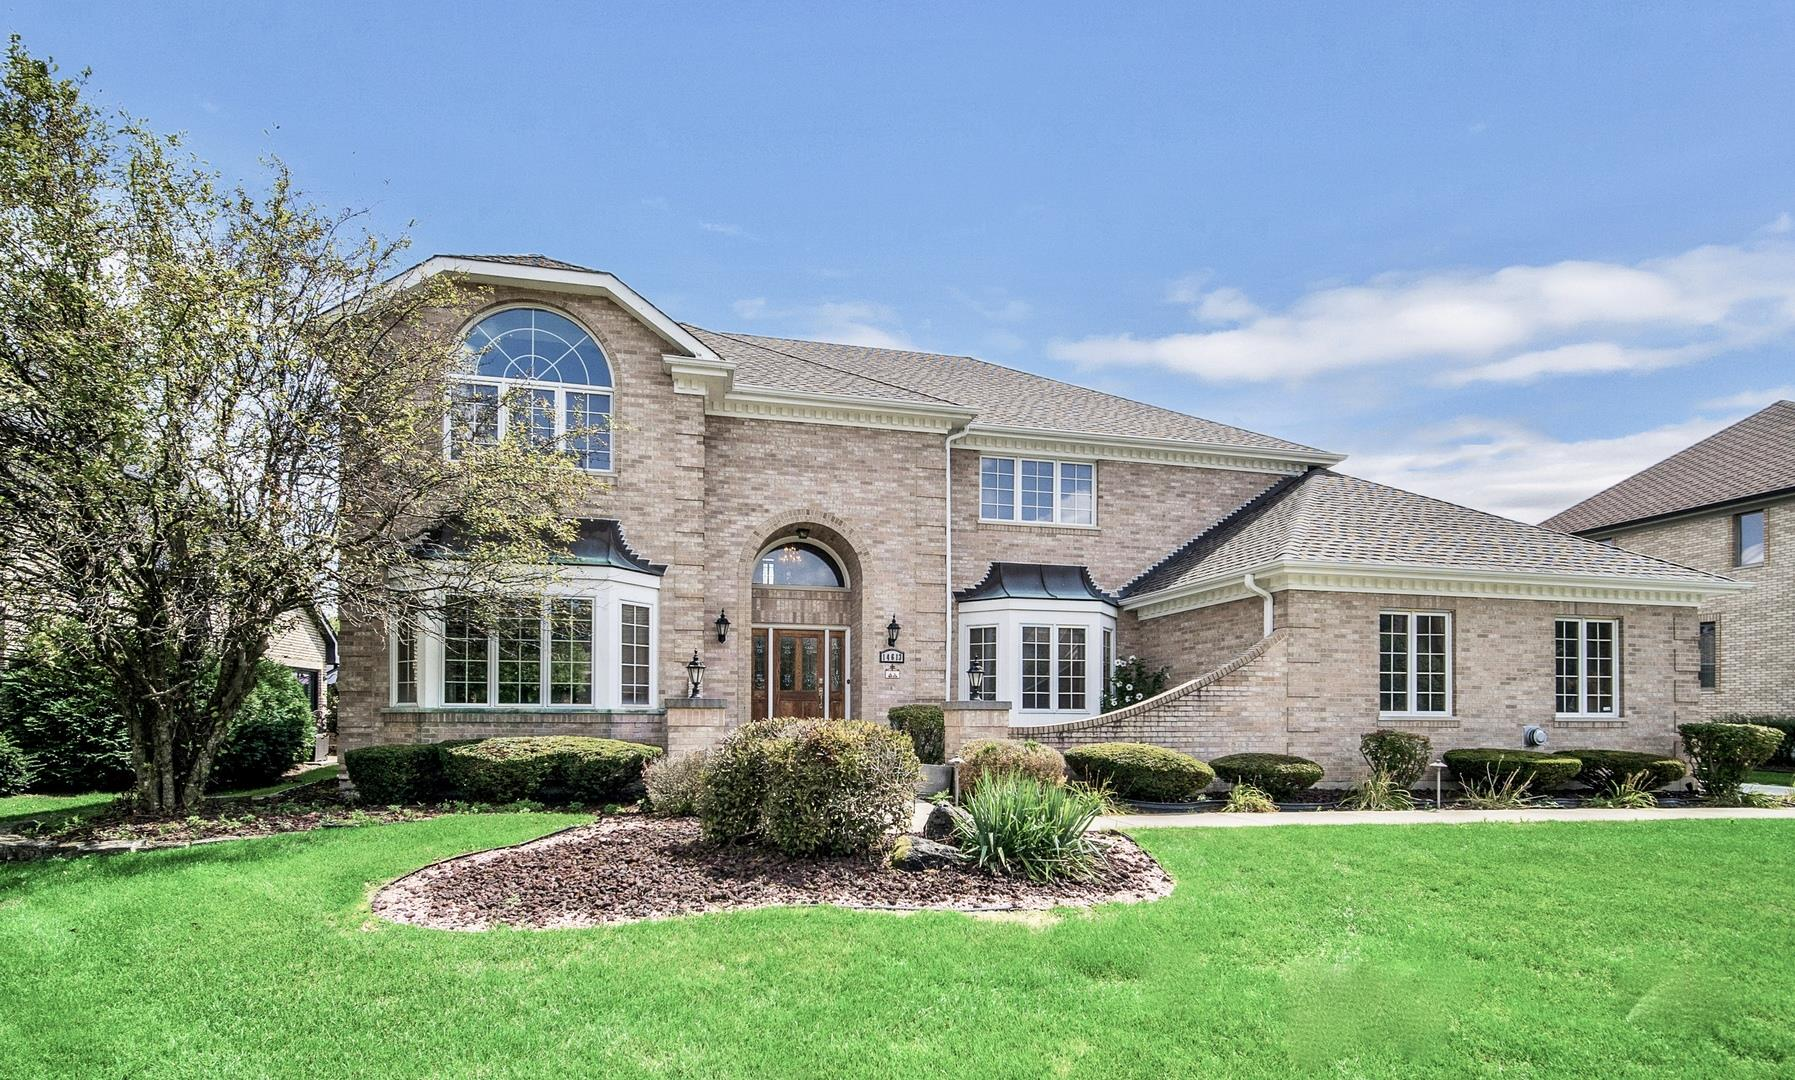 14613 Crystal Tree Drive, Orland Park, IL 60462 - #: 11066403